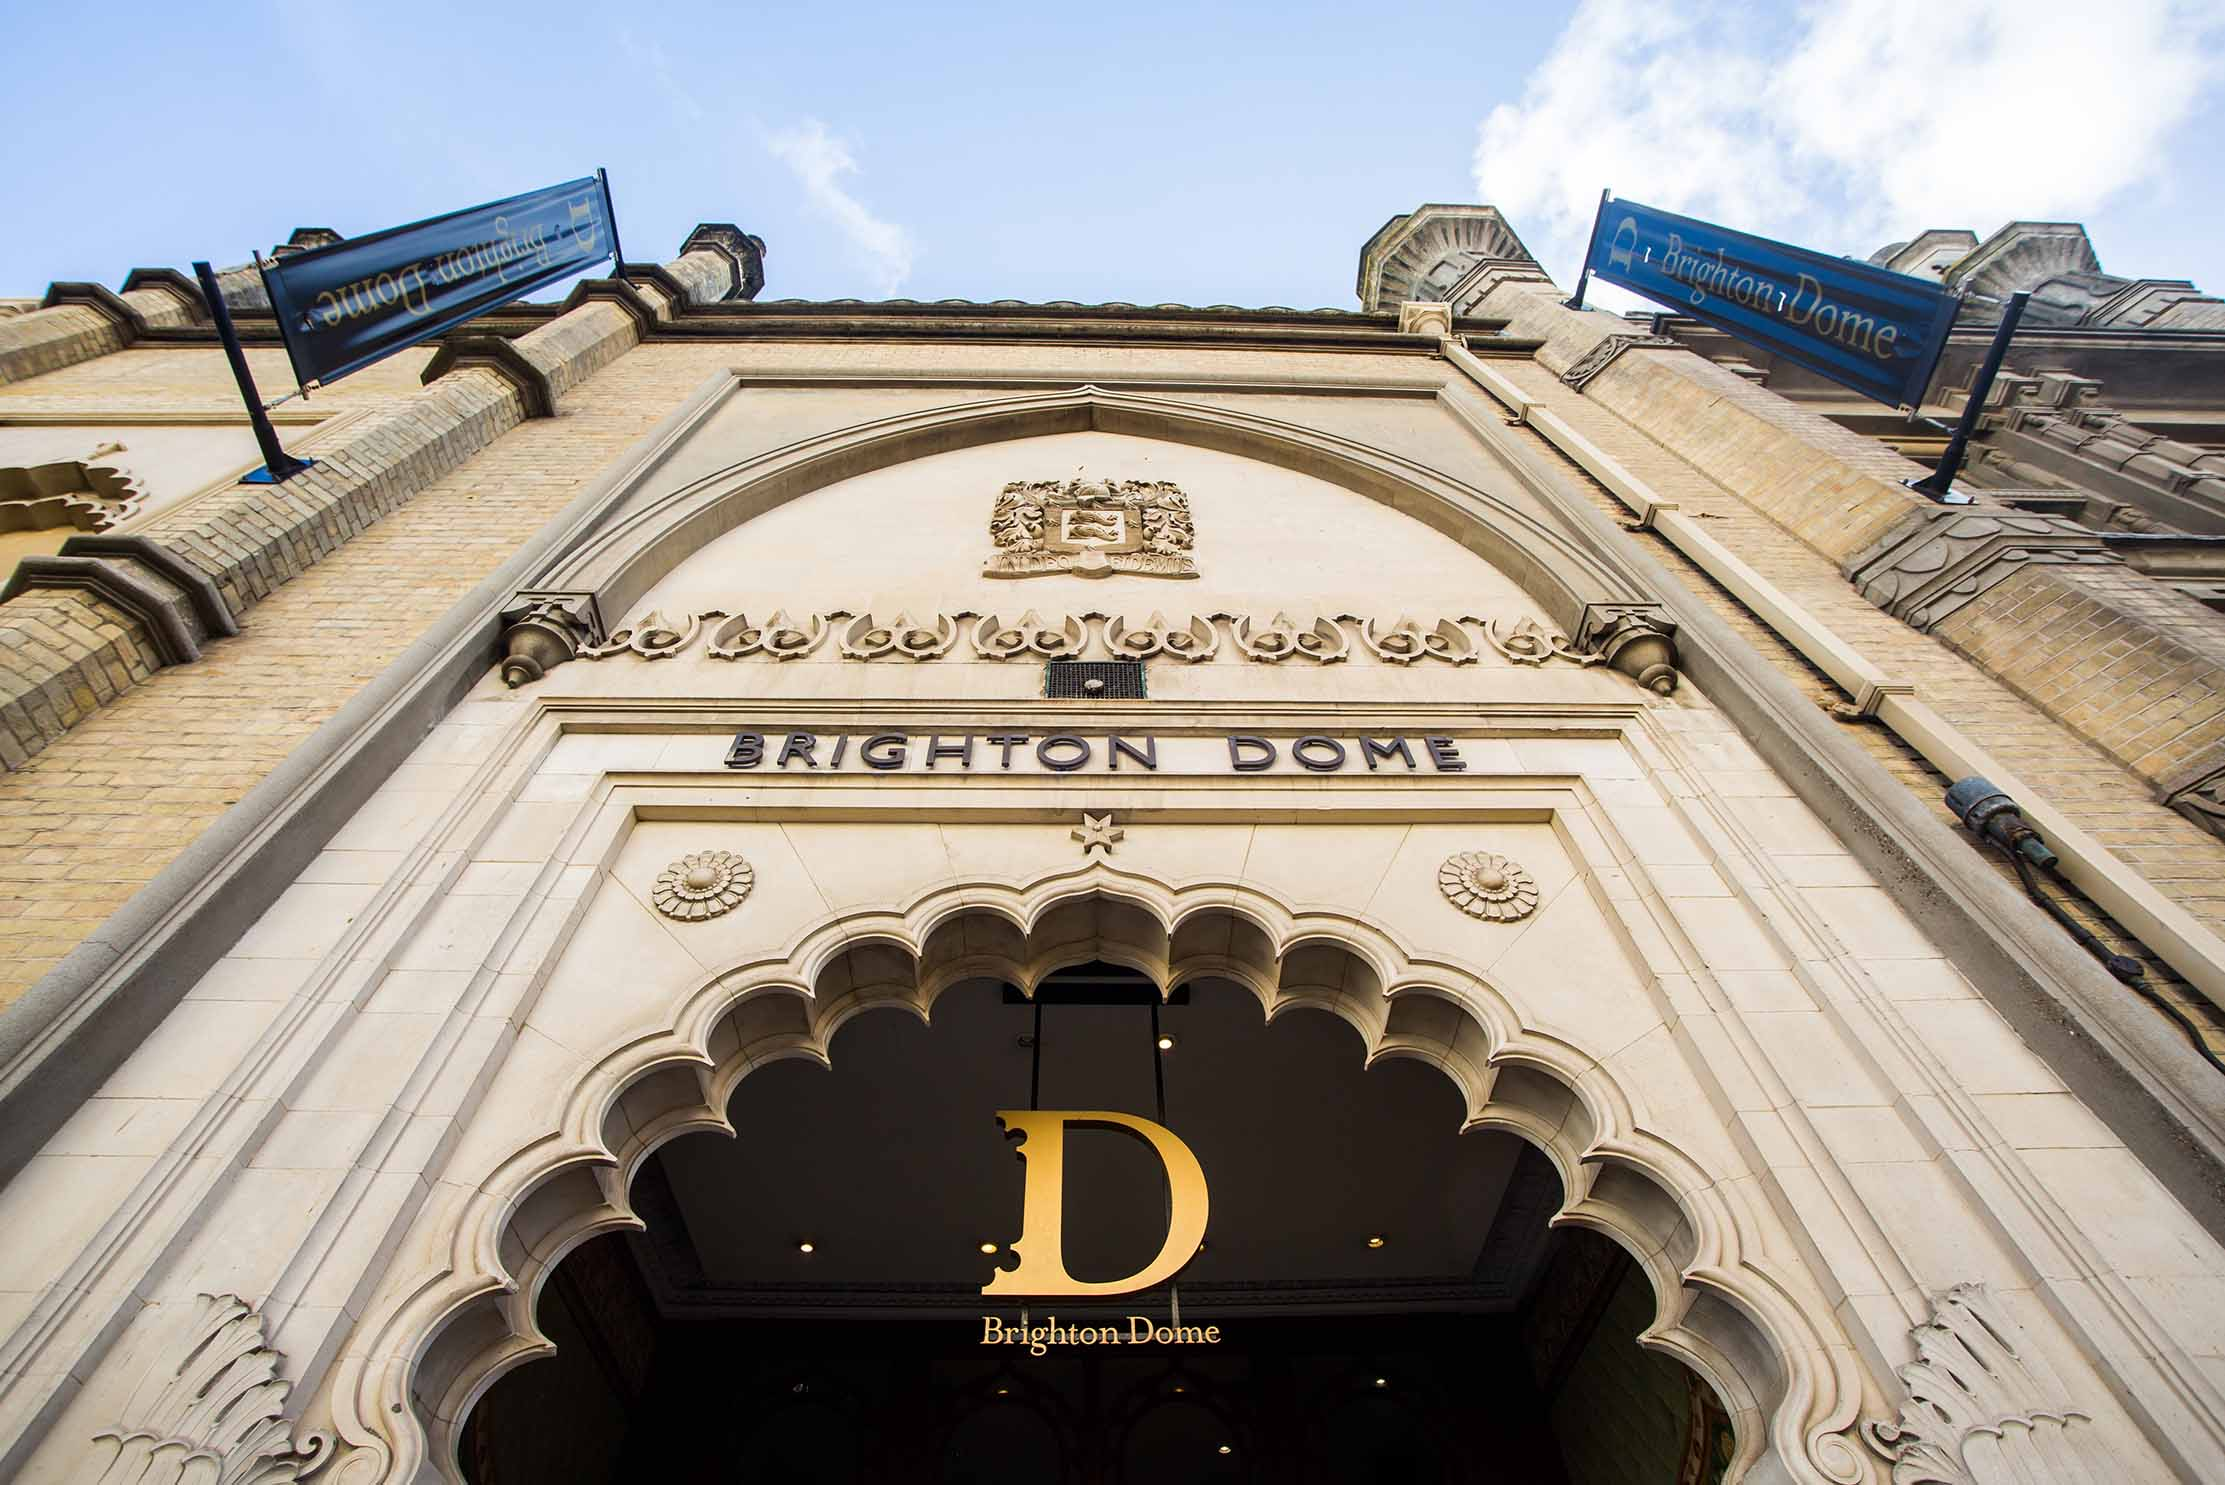 Brighton Dome is seeking to raise £25,000 through the #BringBackBrightonDome crowdfunding appeal